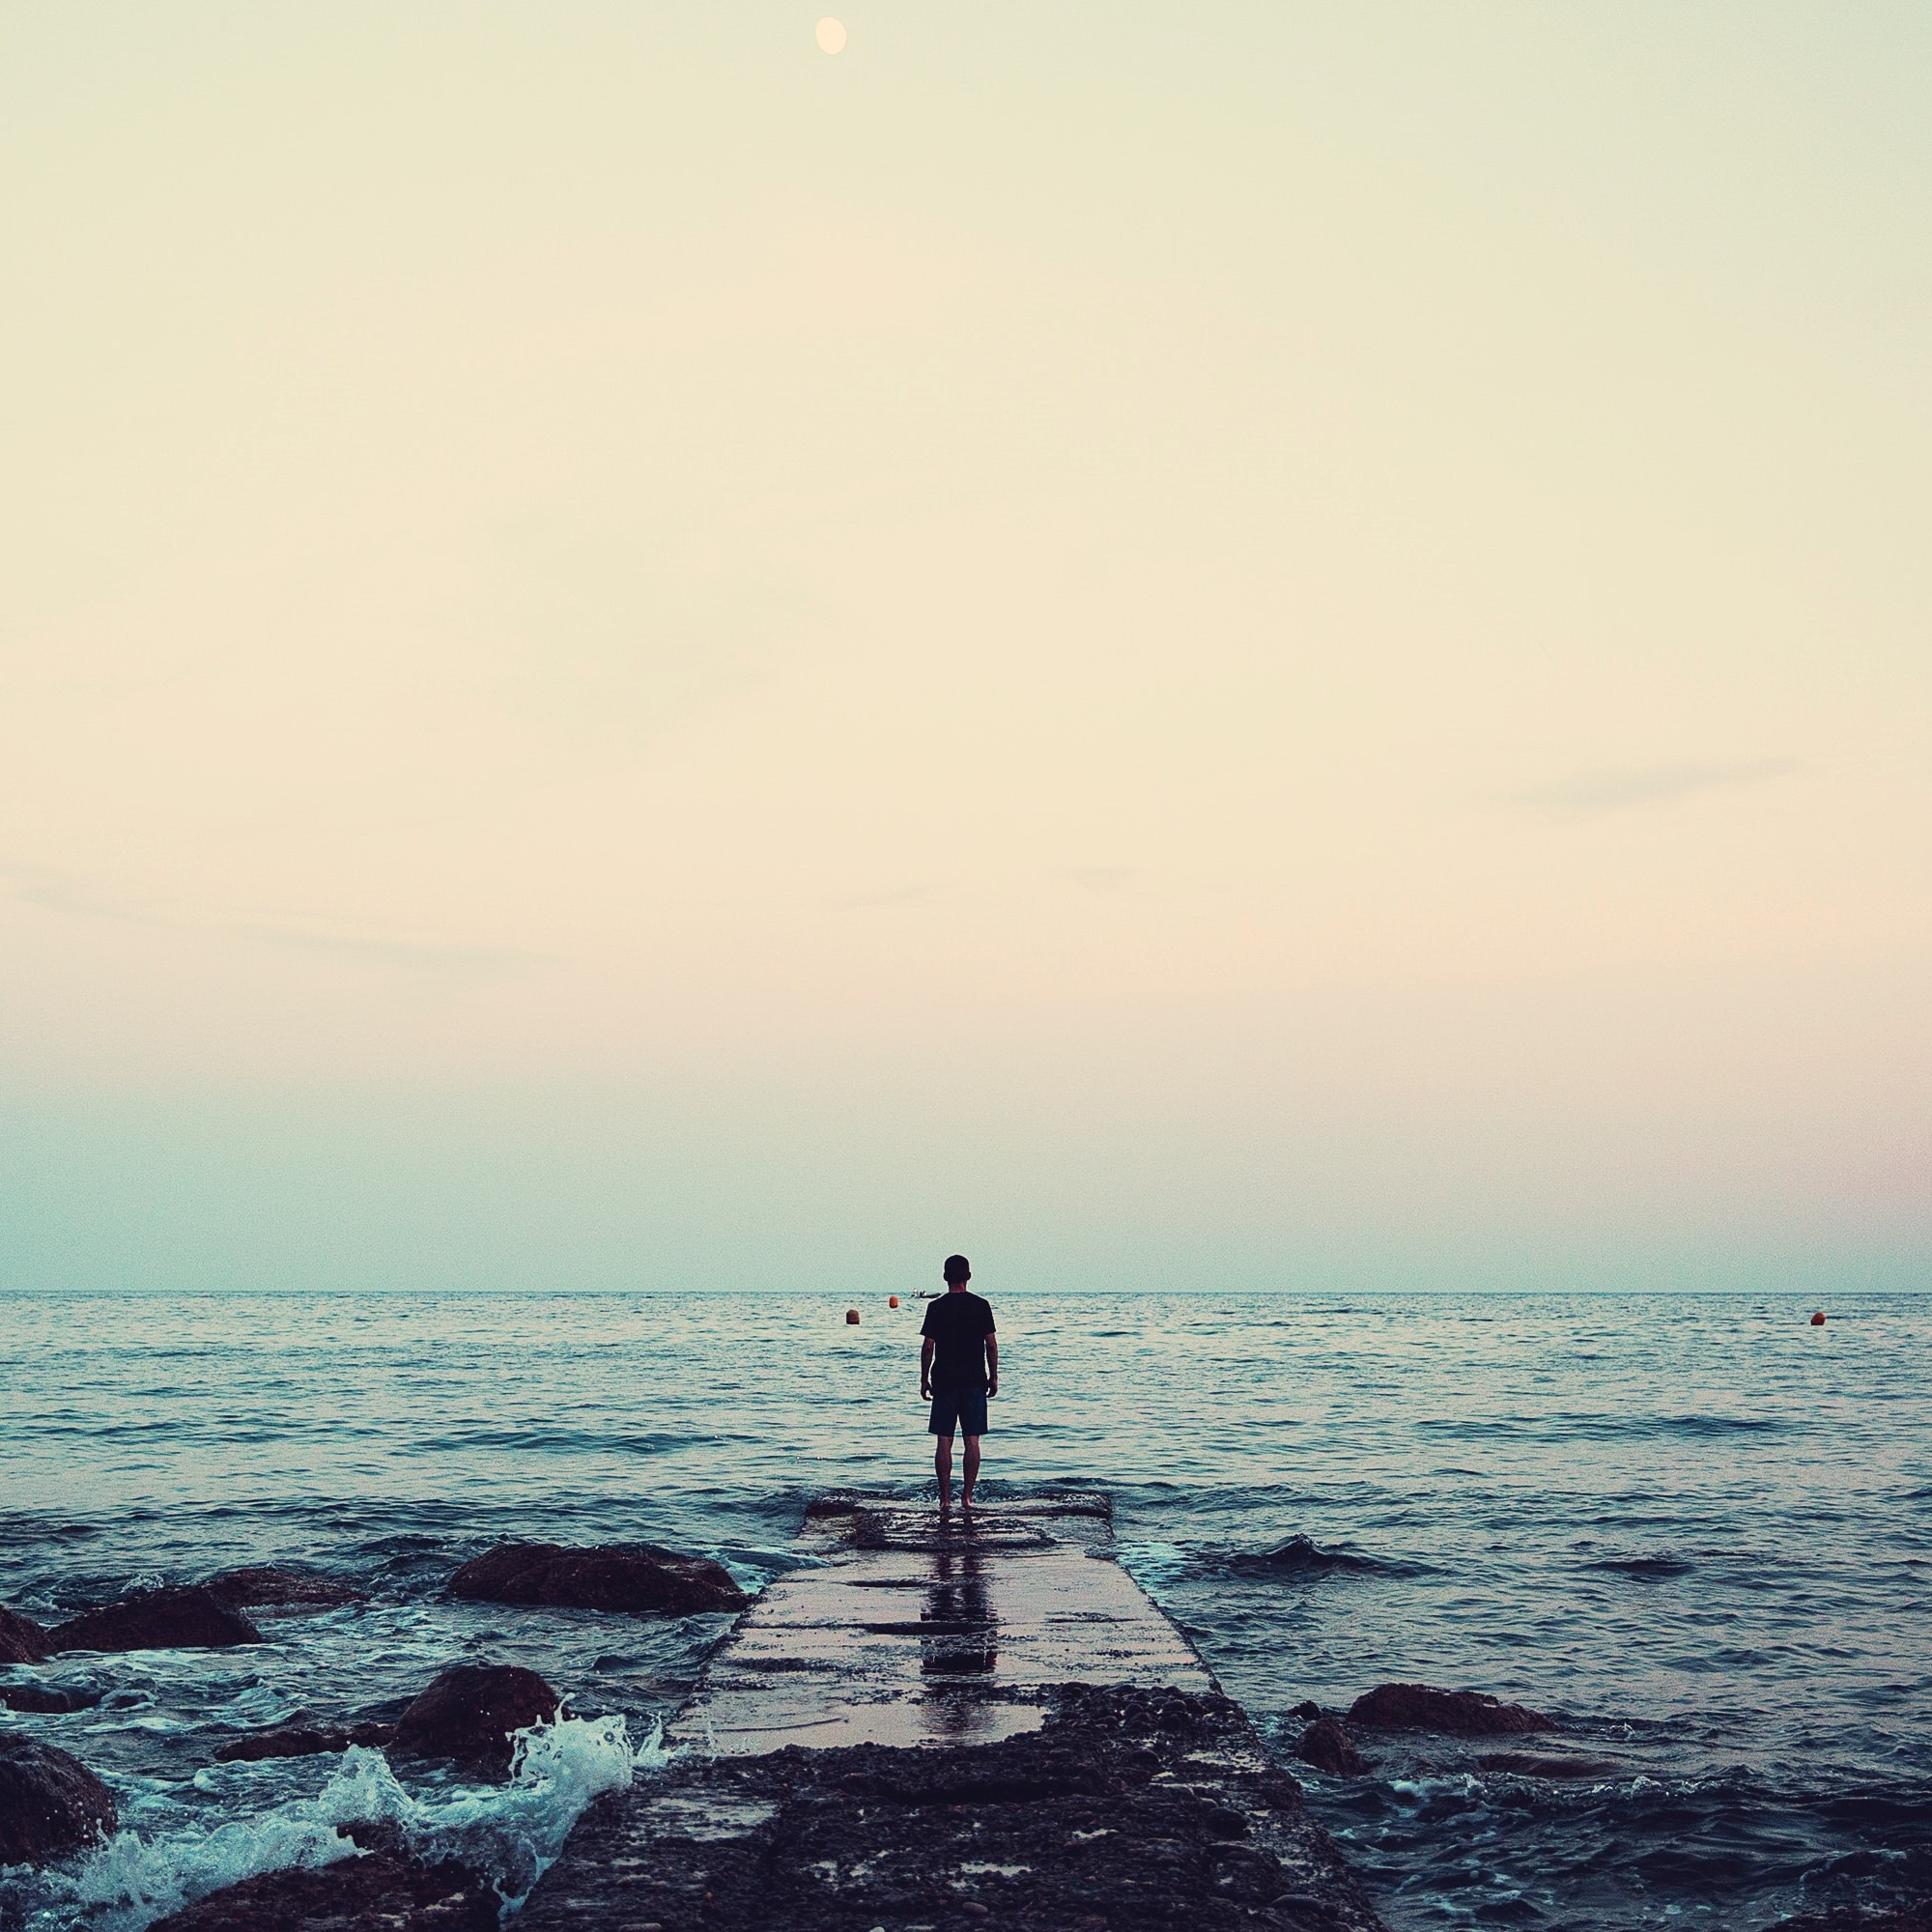 person standing on dock looking out over the sea